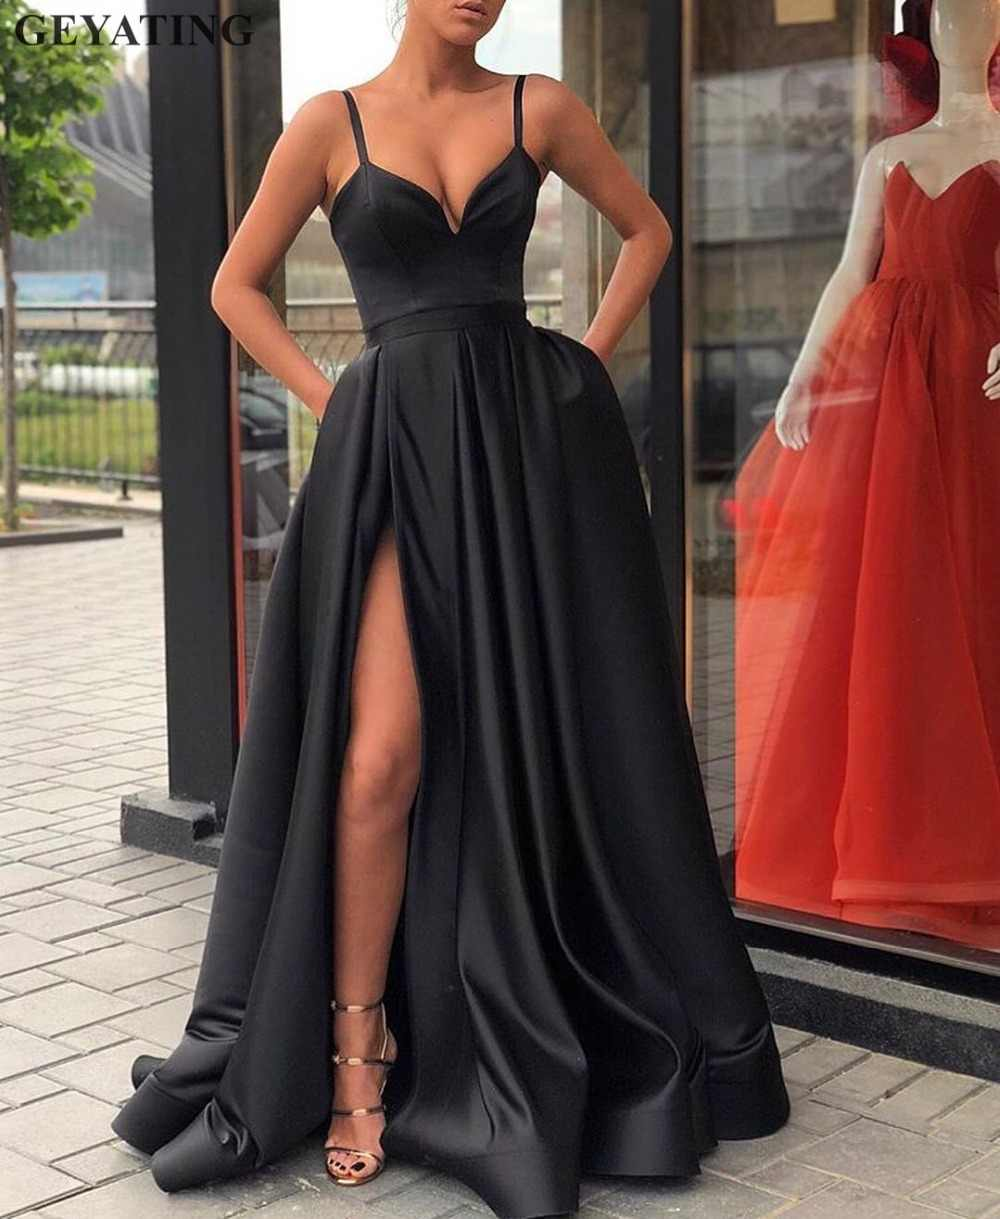 ec657ab670 Detail Feedback Questions about Women's Fashion Black sexy strapless ...